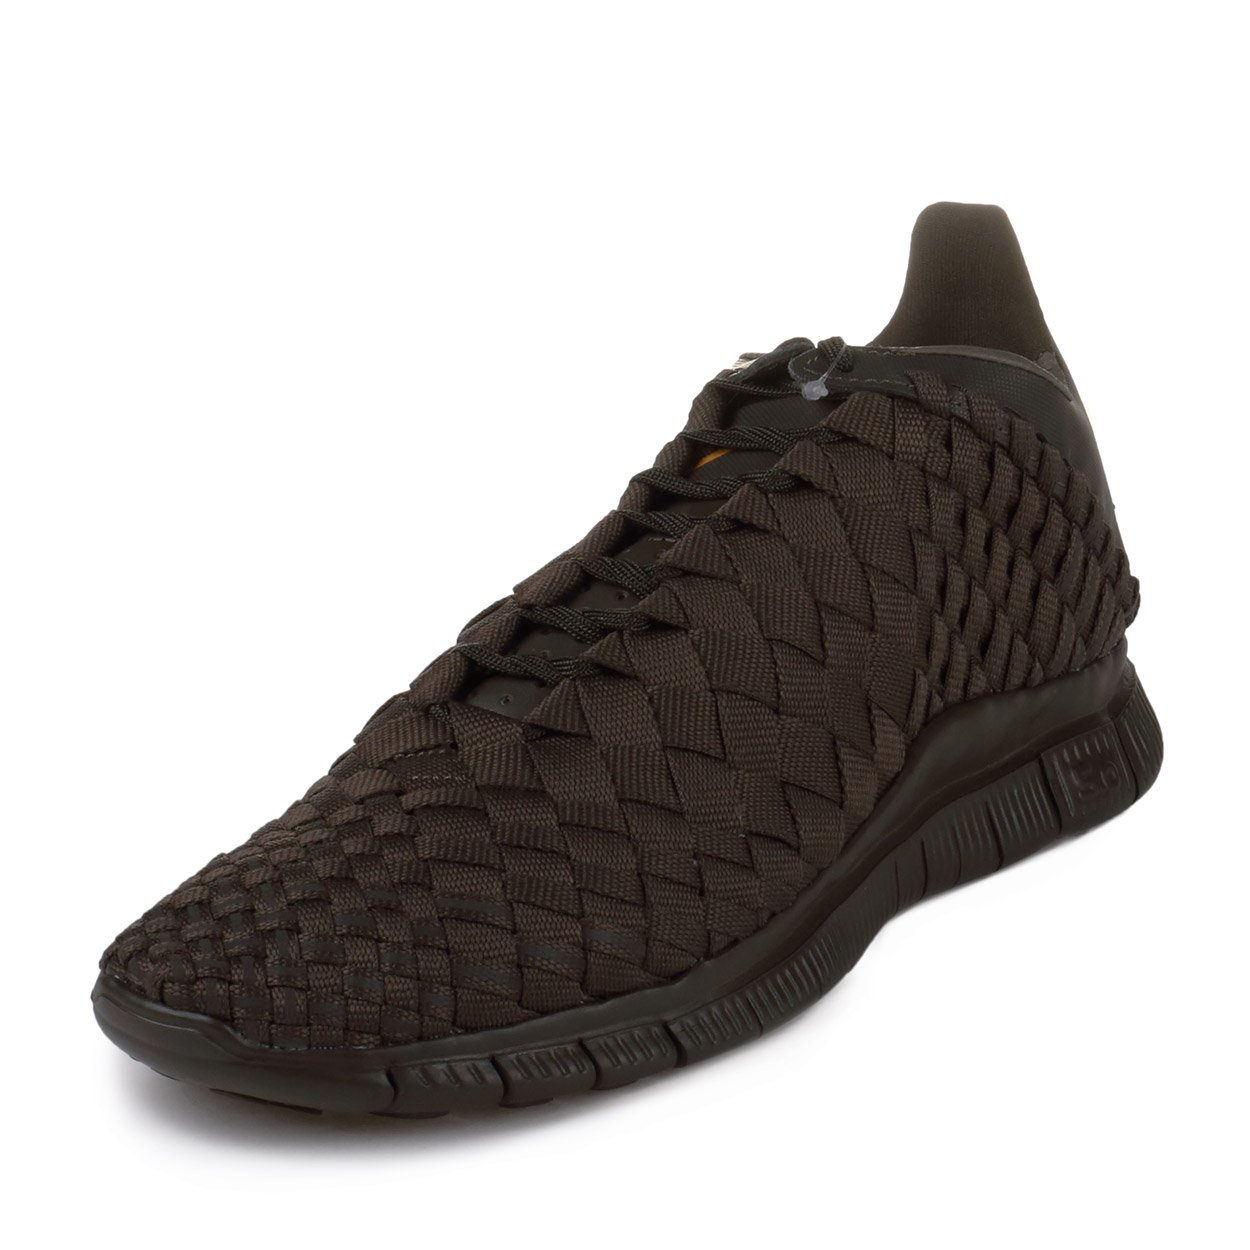 watch 70de8 75227 Nike Free Inneva Woven Tech SP Olive - Dark LodenDark Loden 7 UK 41 EUR  Amazon.co.uk Shoes  Bags